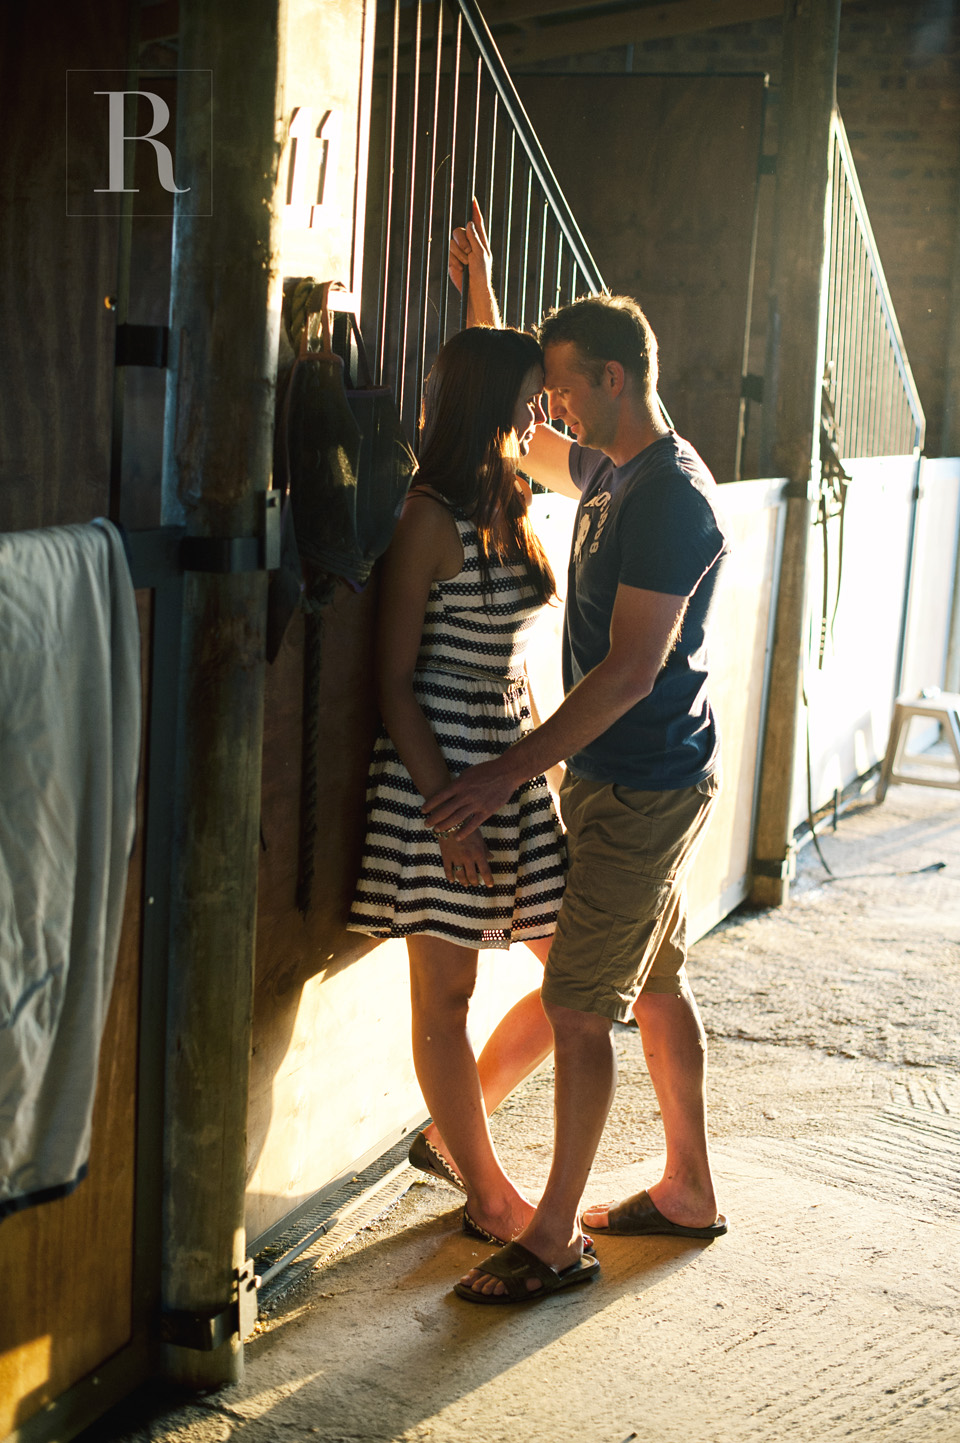 RYAN PARKER PHOTOGRAPHY_BERNARD & ESTEE_ENGAGEMENT SESSION_JOHANNESBURG DSC_1977.jpg